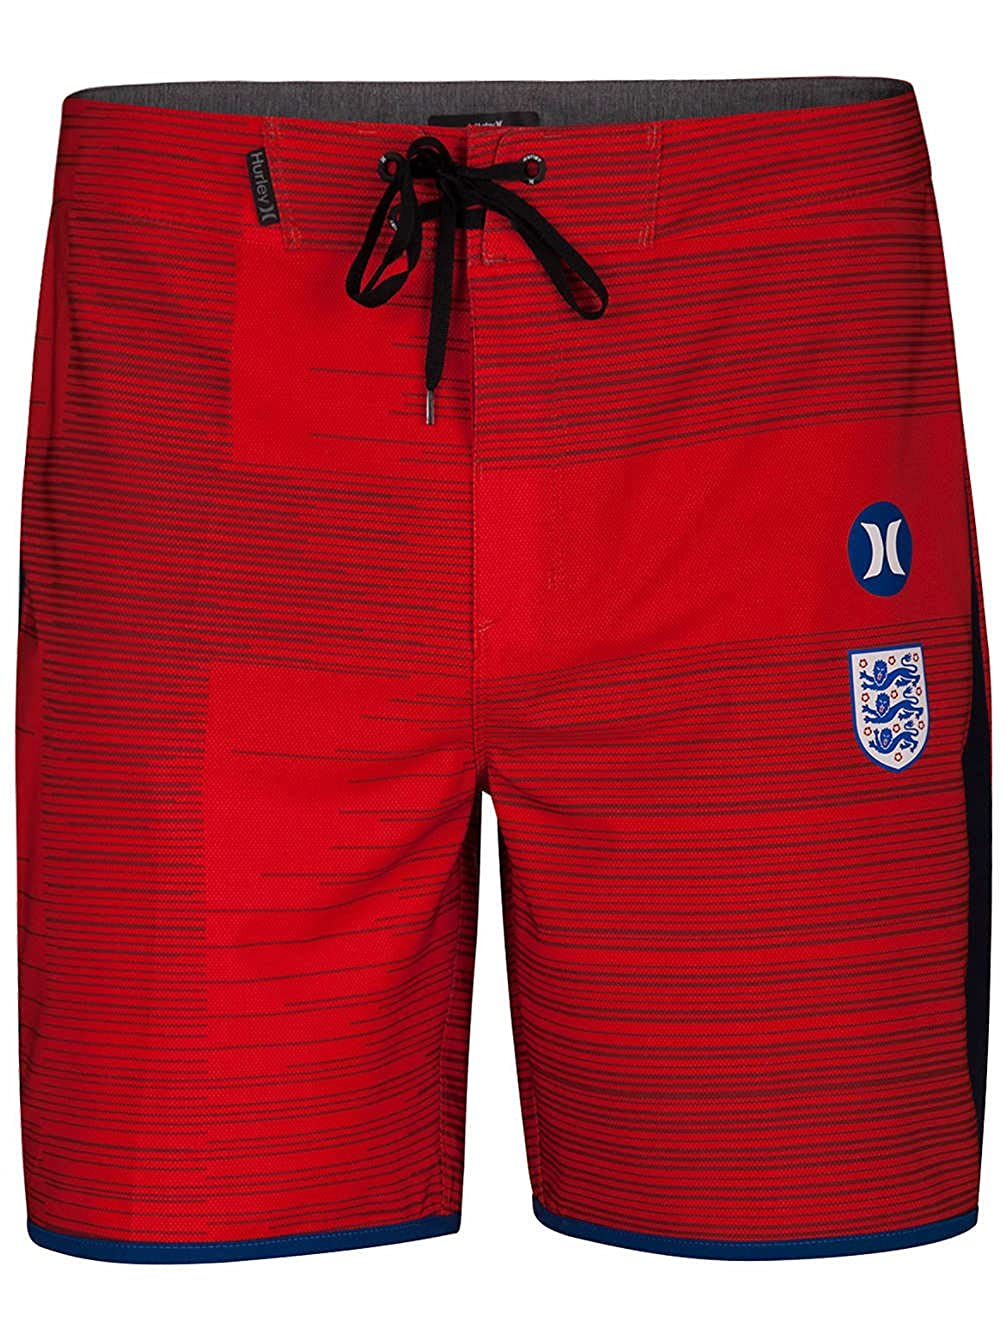 TALLA 32. Hurley Phantom England National Team 18'